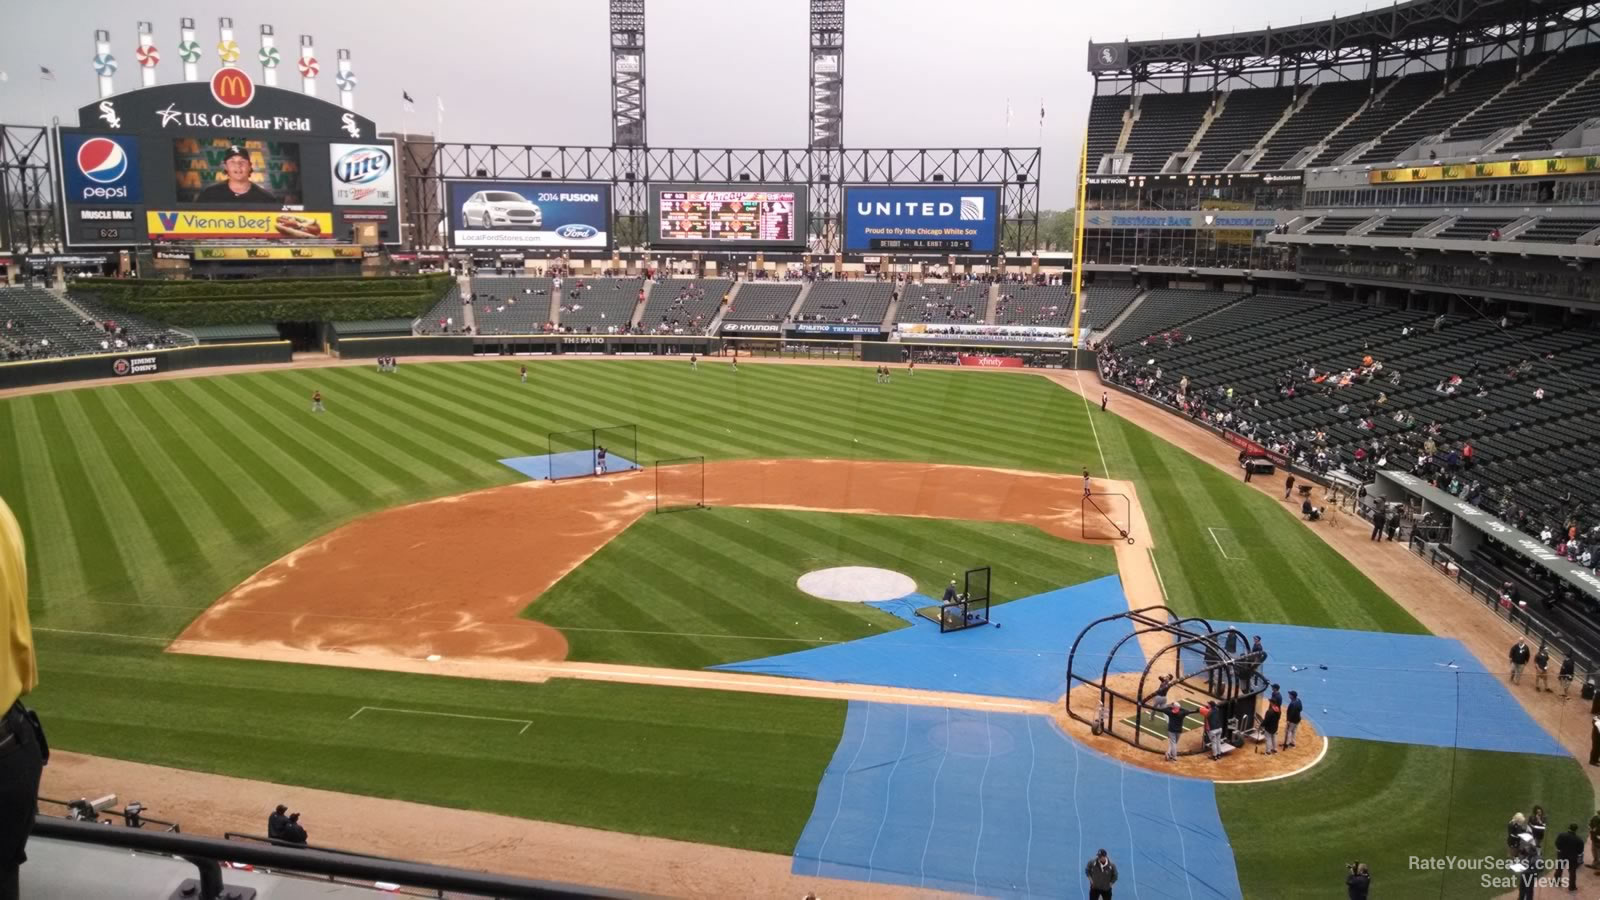 U.S. Cellular Field Section 336 Seat View: Row 3